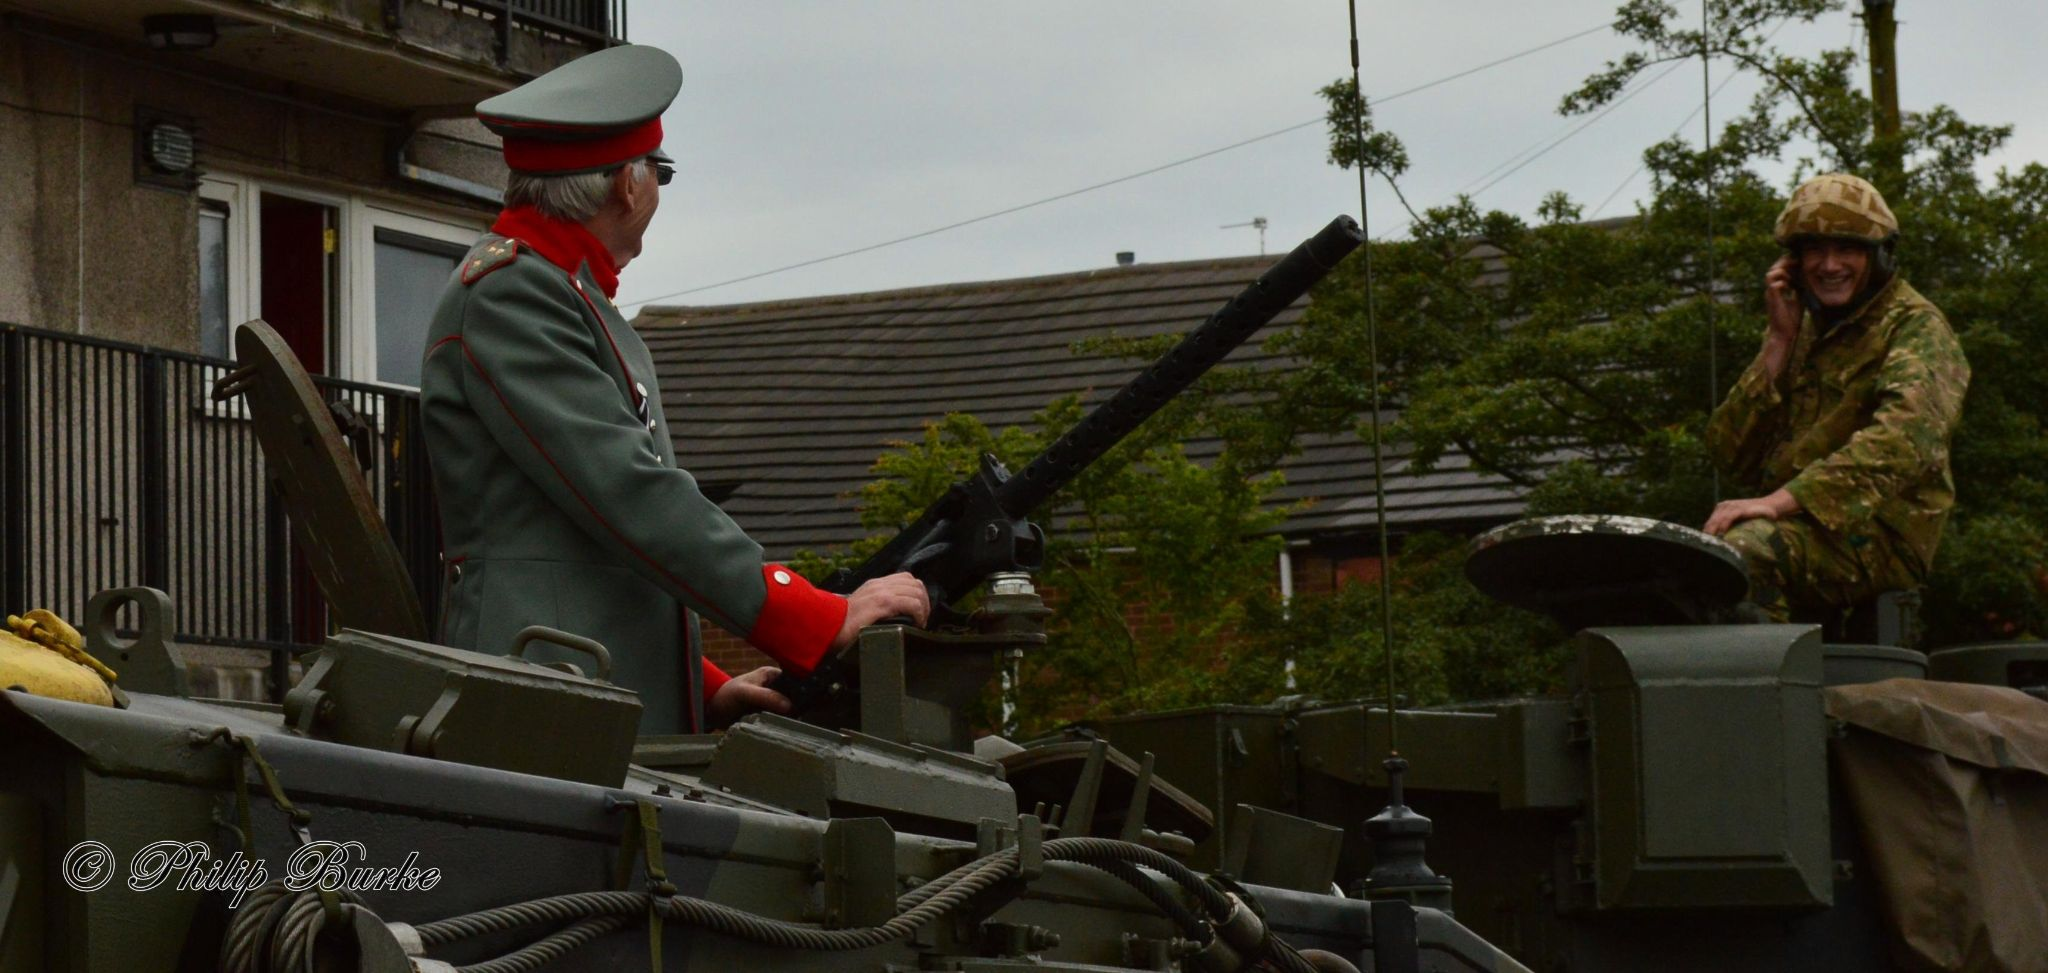 Heywood 1940s day by Phil Burke